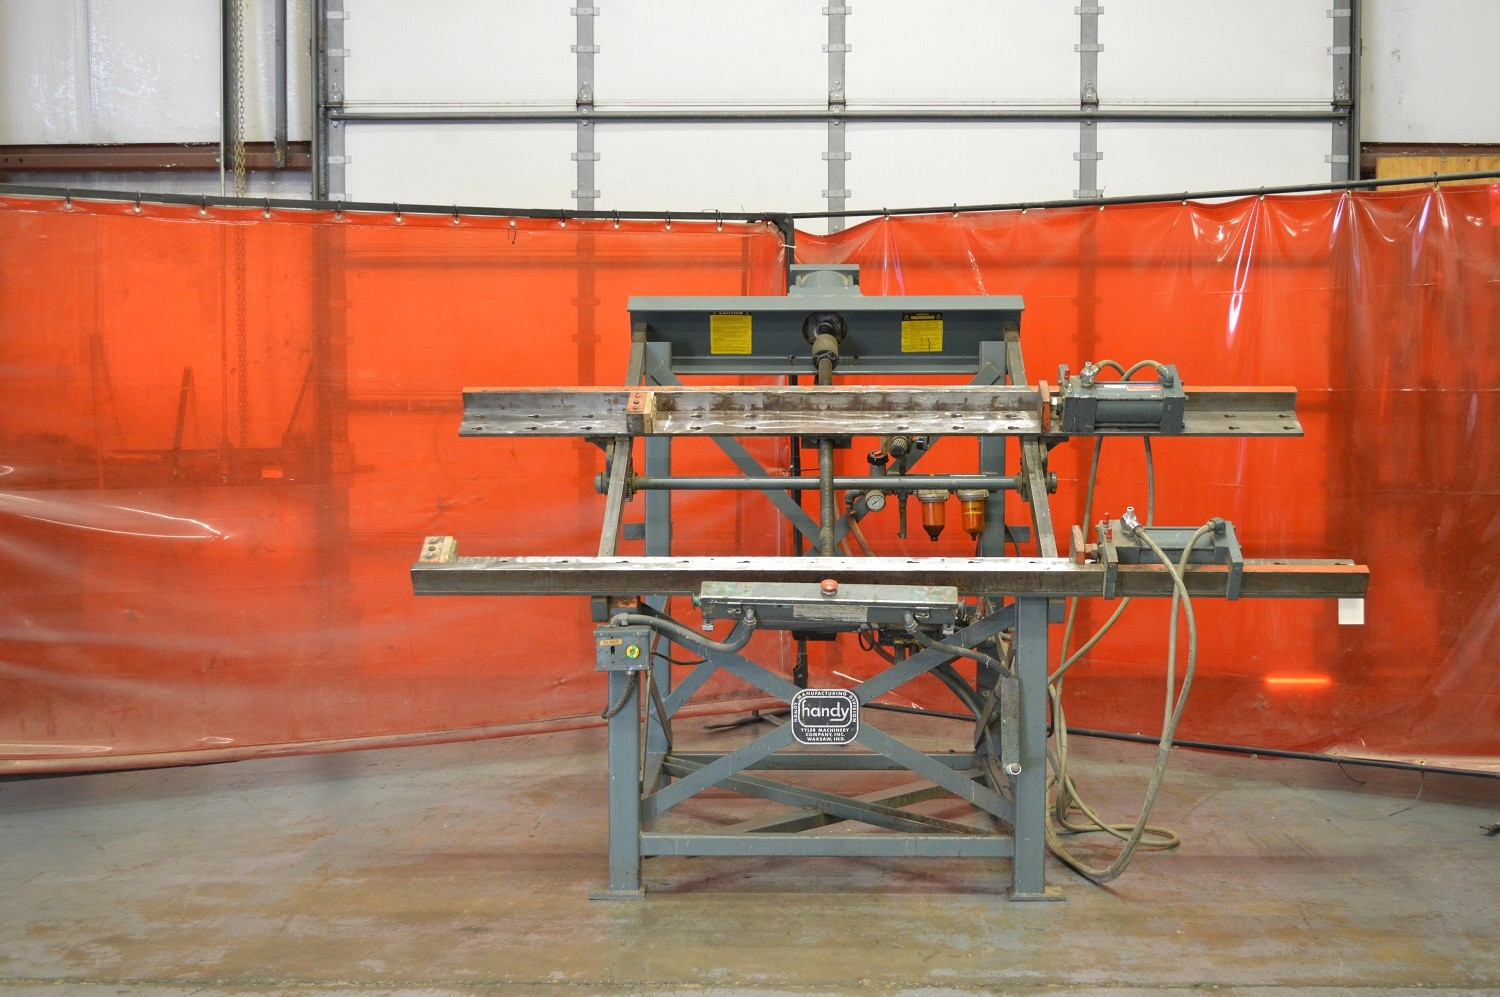 Used Two-Way Frame Clamp - Handy Model: ECONO 124-84 - Photo 1